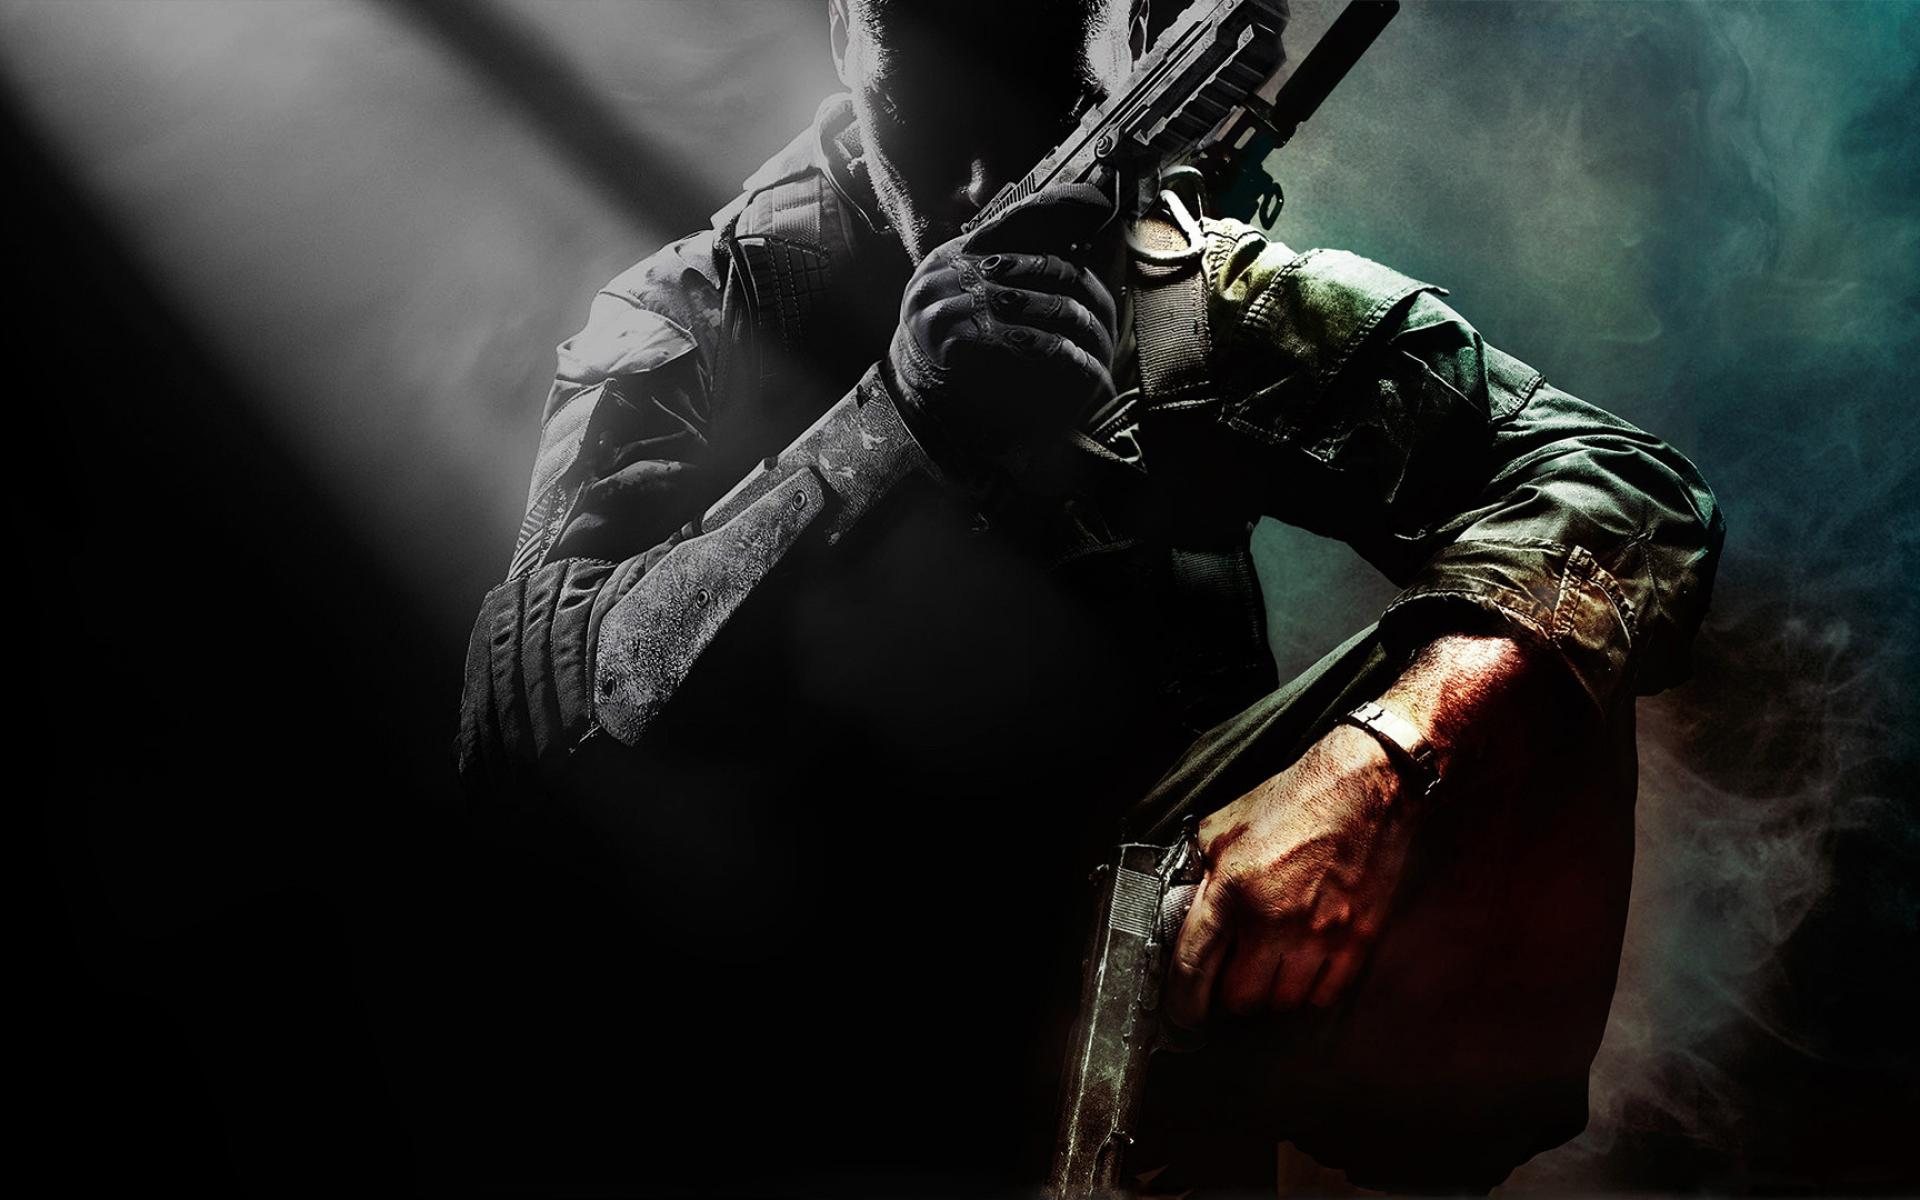 Call Of Duty Live Wallpaper